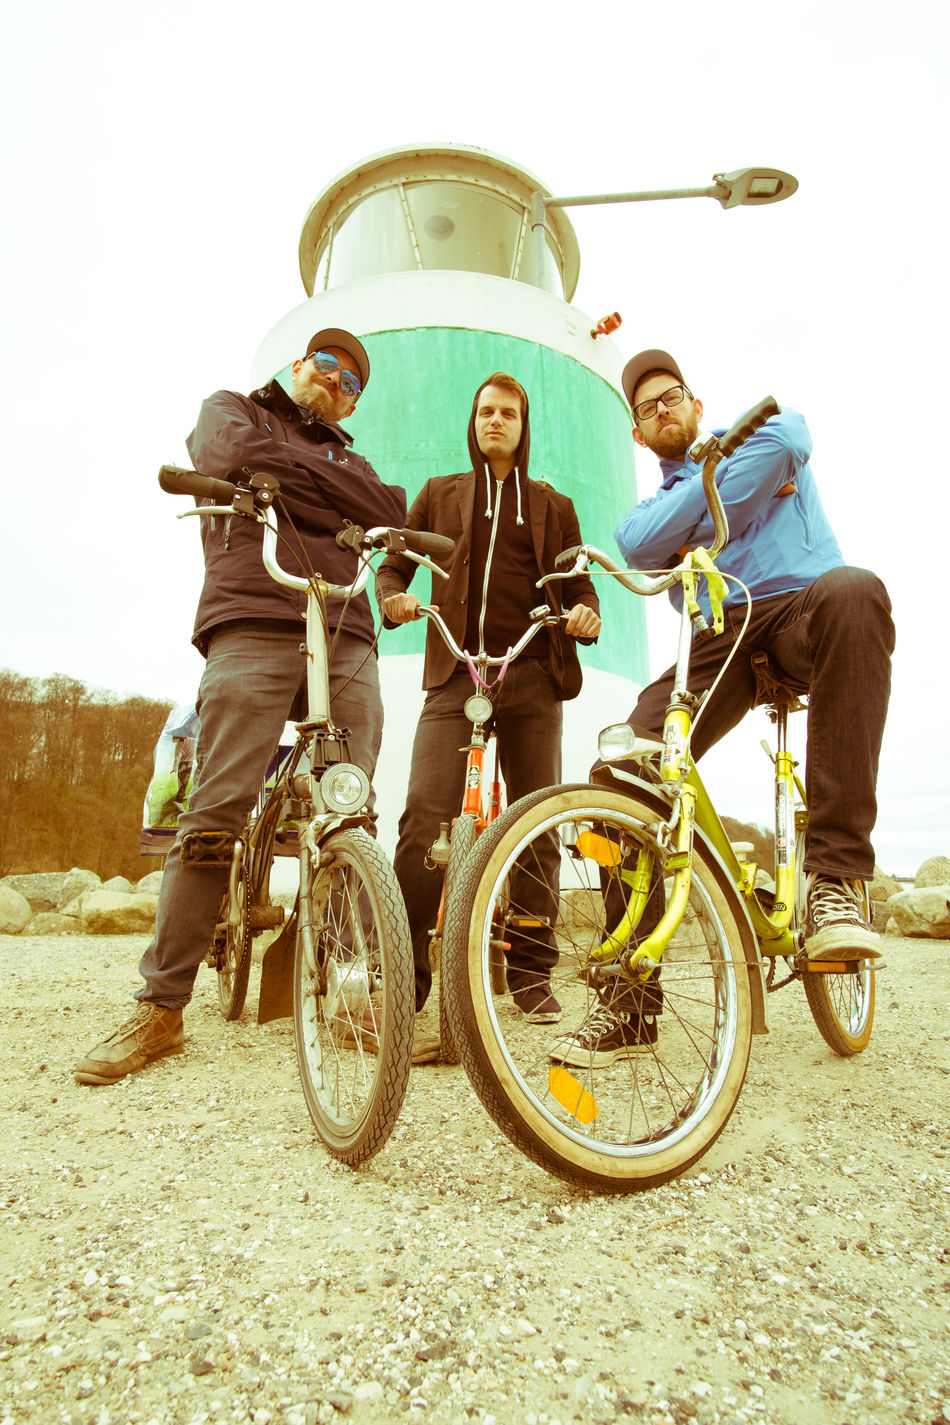 Klappradclique 12mm  Aarhus, Denmark Adult Bicycle Carefree Clique Freedom Fresh On Eyeem  Friendship Good Times Healthy Lifestyle Klapprad Males  Outdoors Togetherness Vacation Young Adult